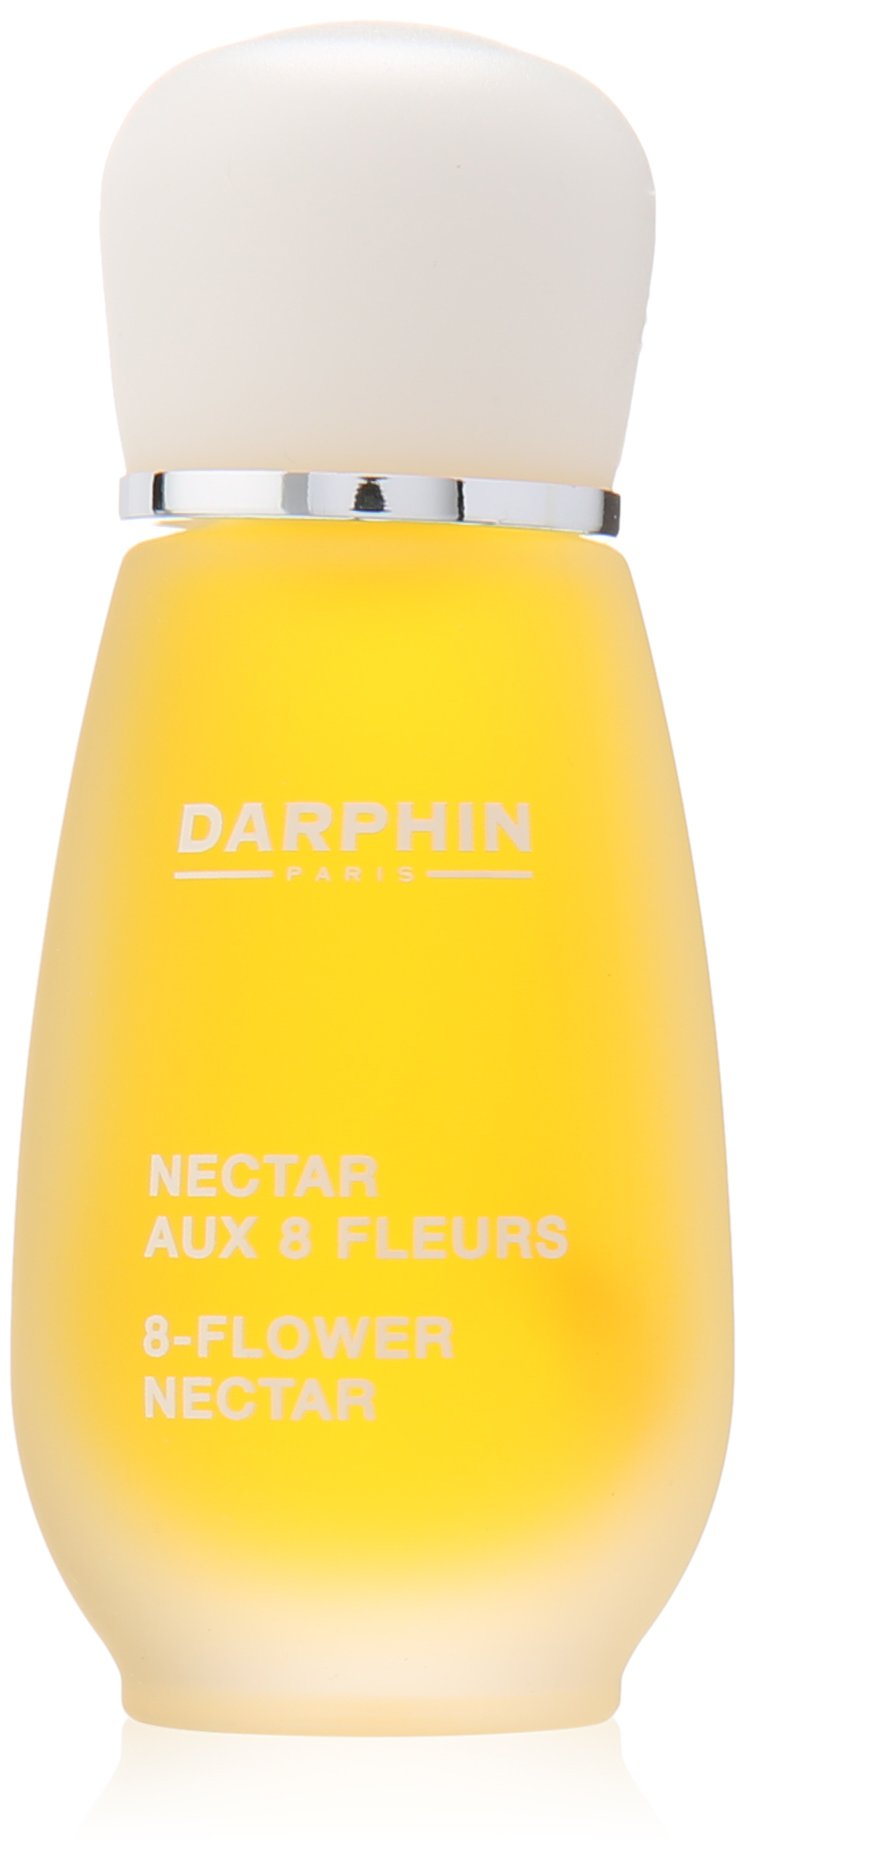 Darphin 8 Flower Nectar Facial Treatment, 0.5 Ounce